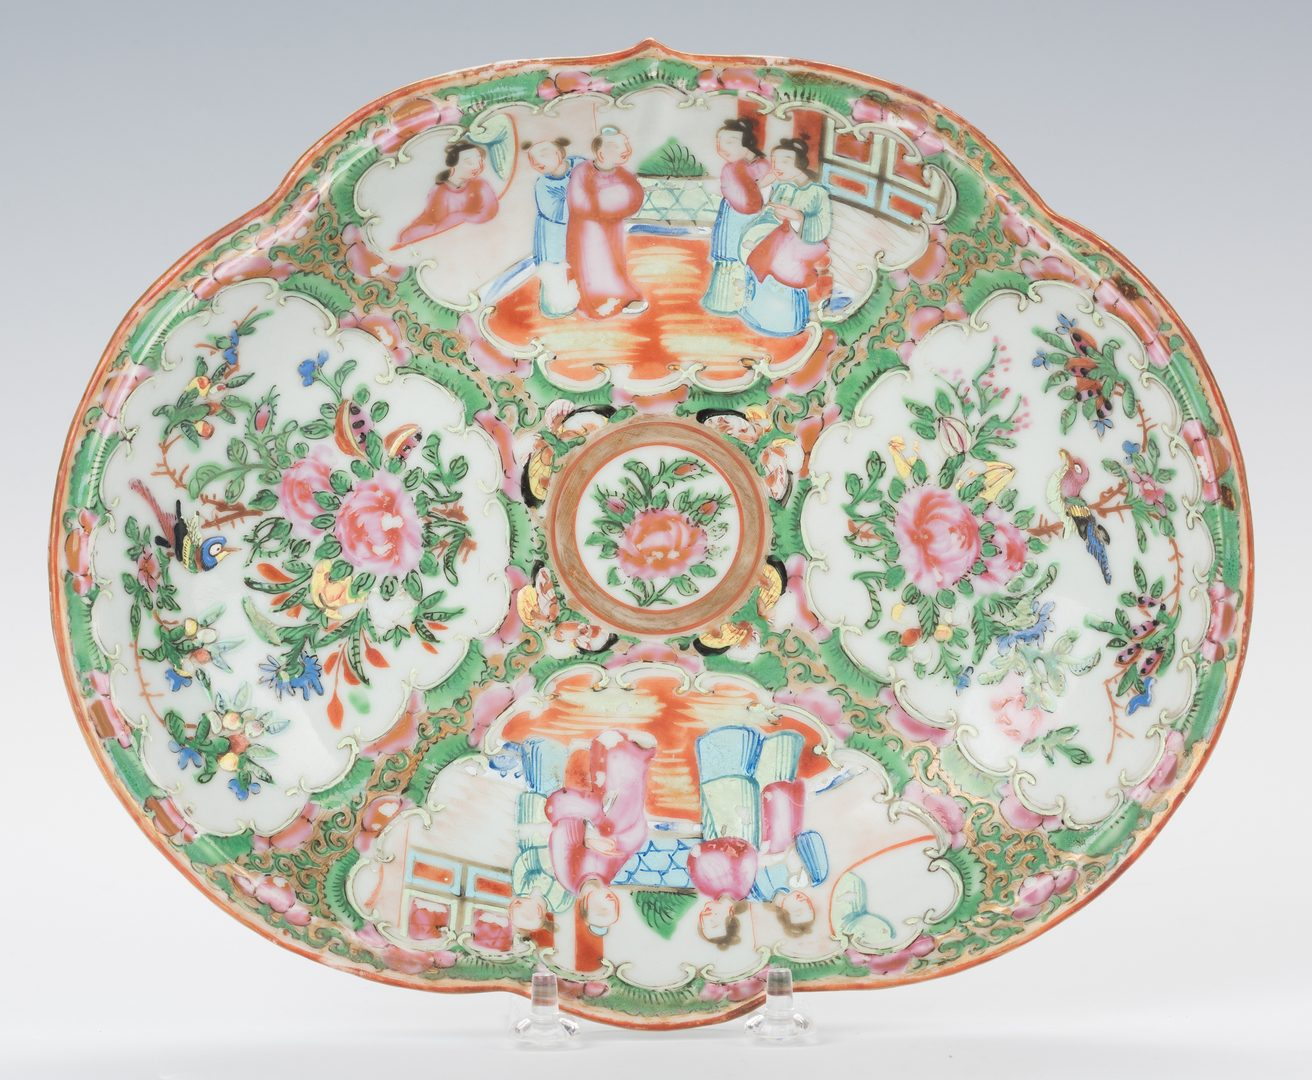 Lot 355: 3 Chinese Rose Medallion Porcelain Dishes, Oval shapes